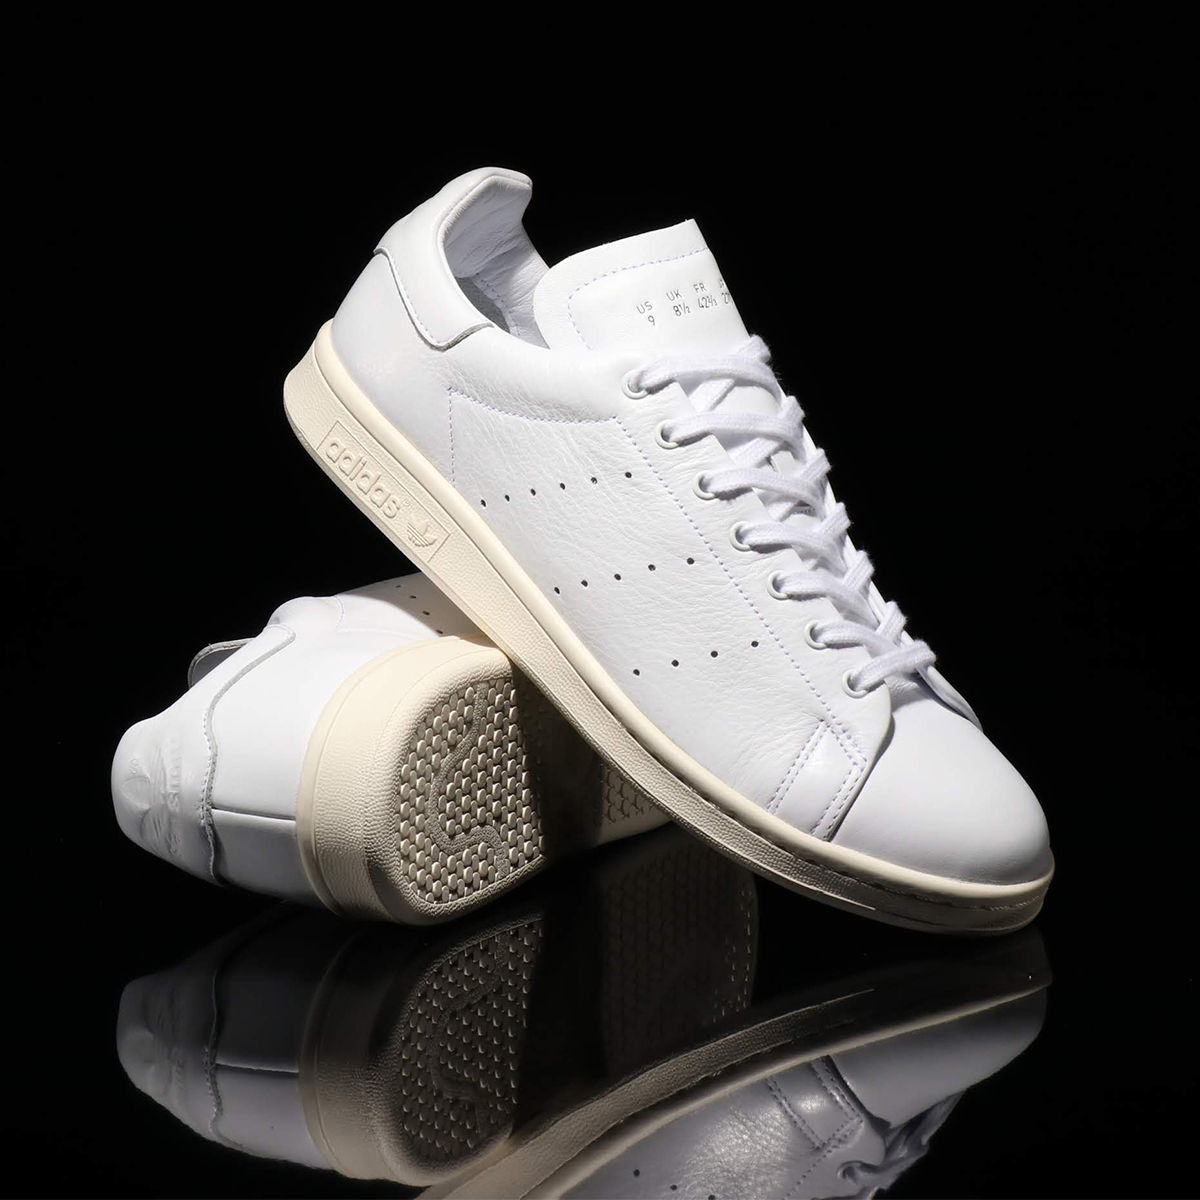 official photos 59a30 8b74c adidas Originals STAN SMITH RECON (アディダスオリジナルススタンスミスリーコン) RUNNING  WHITE/RUNNING WHITE/OFF WHITE 19FW-S